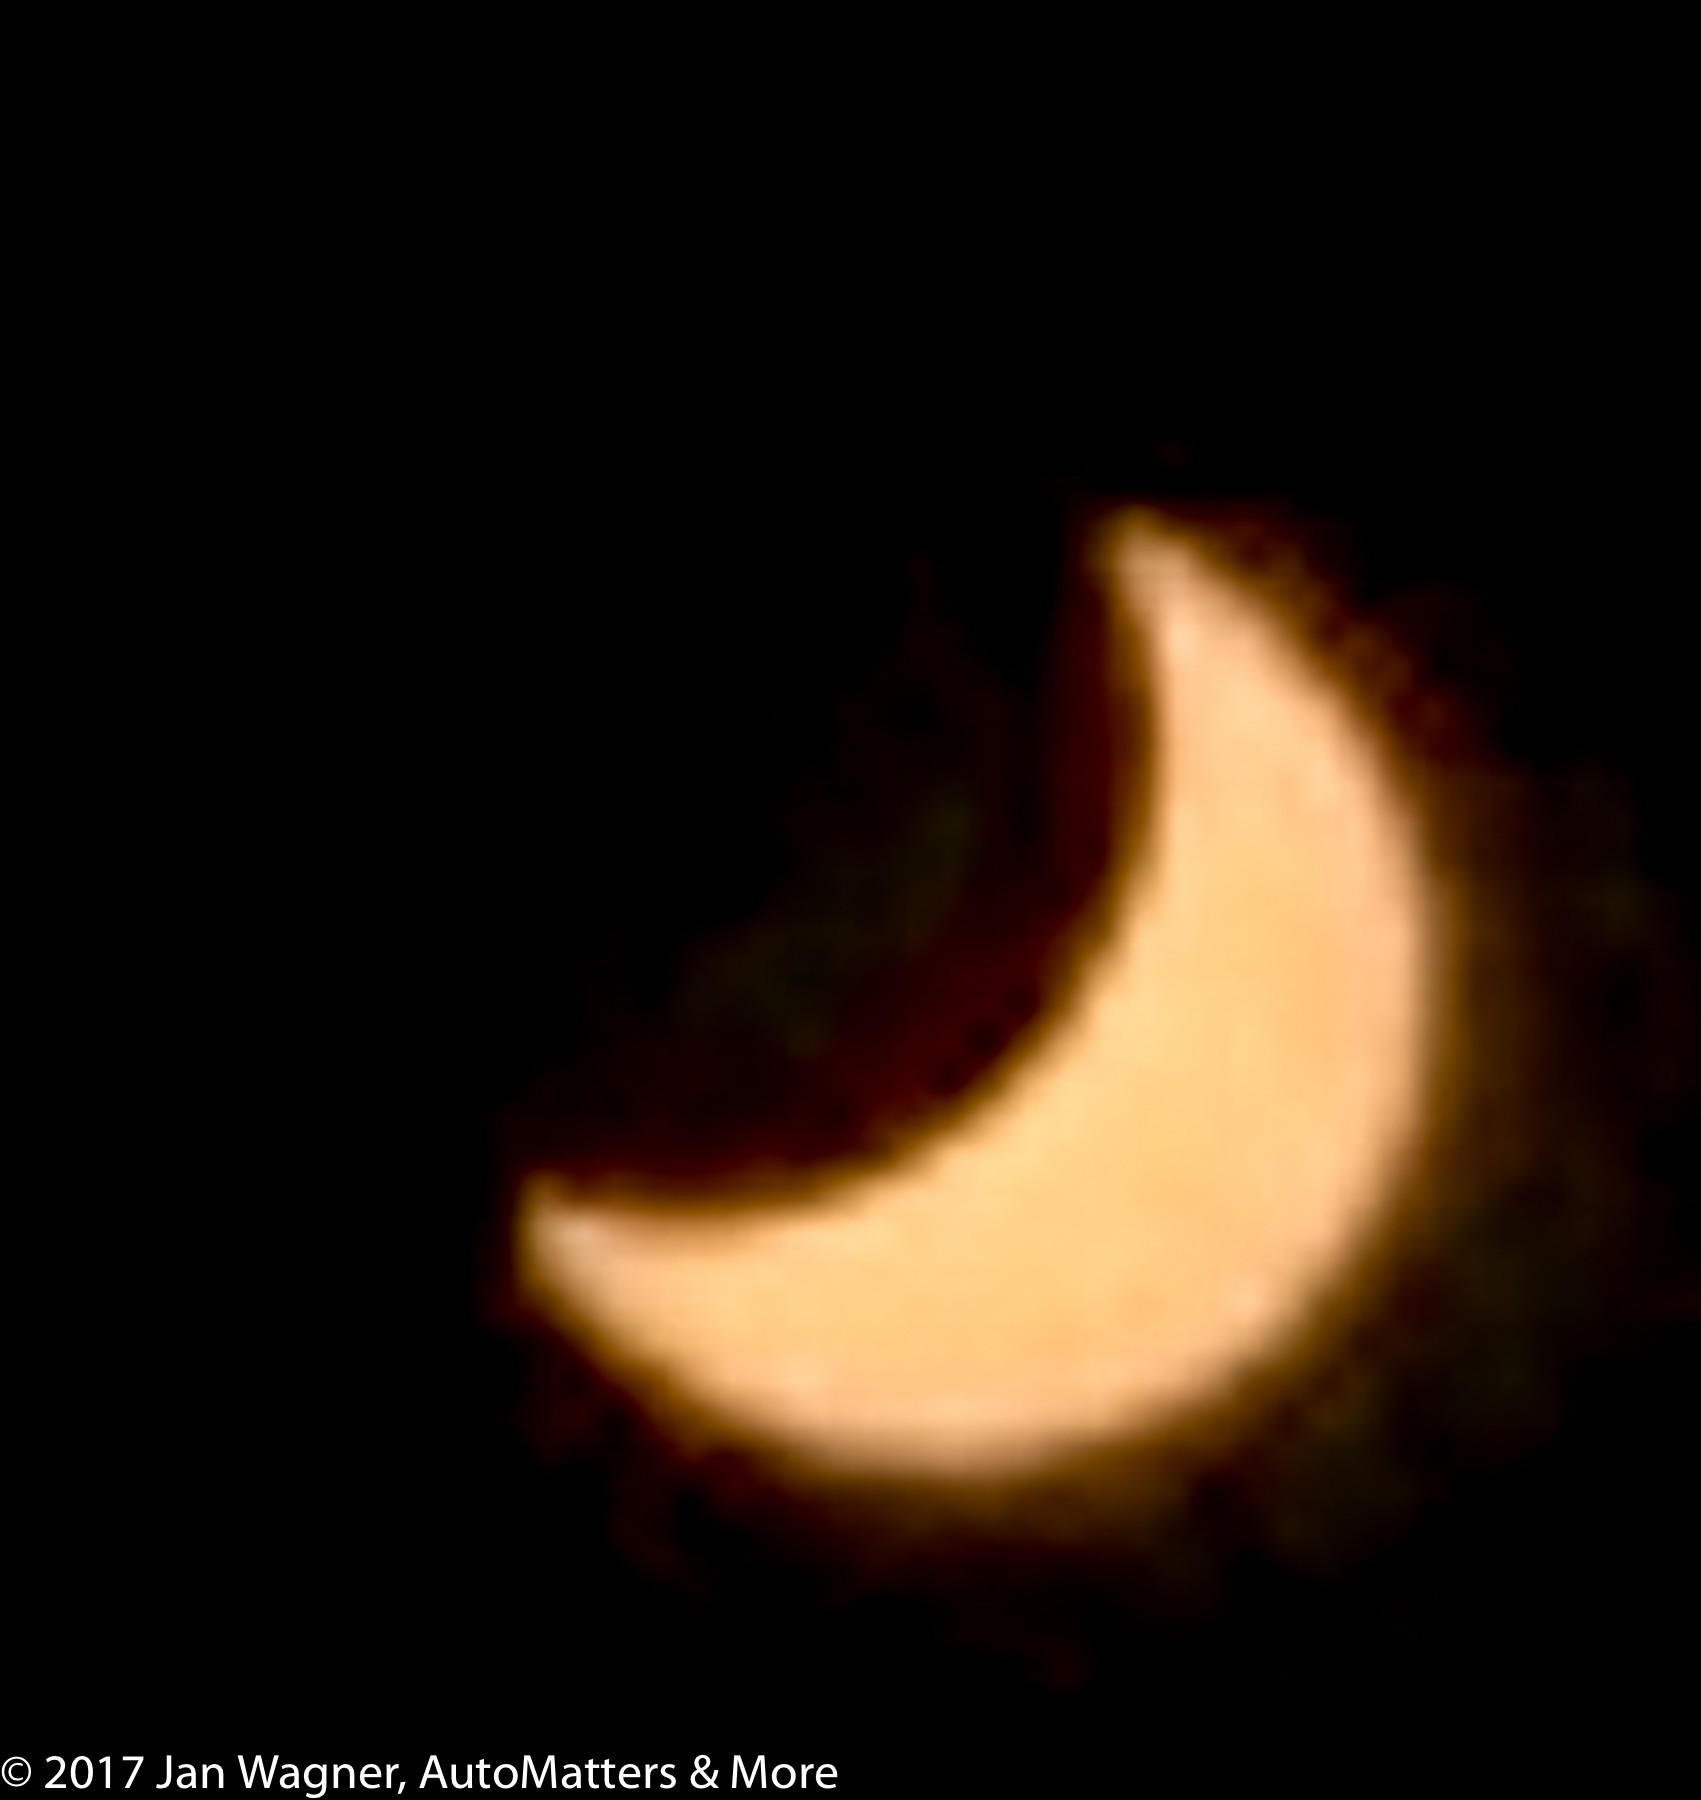 Maximum eclipse coverage for San Diego - iPhone photo